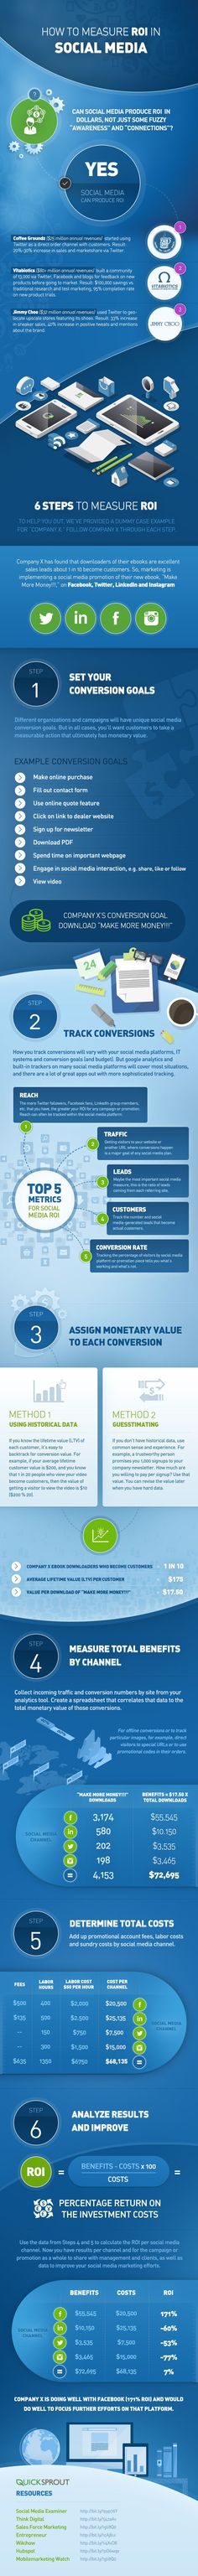 How to Generate Leads with Social Media and Measure Social Media ROI #infographic